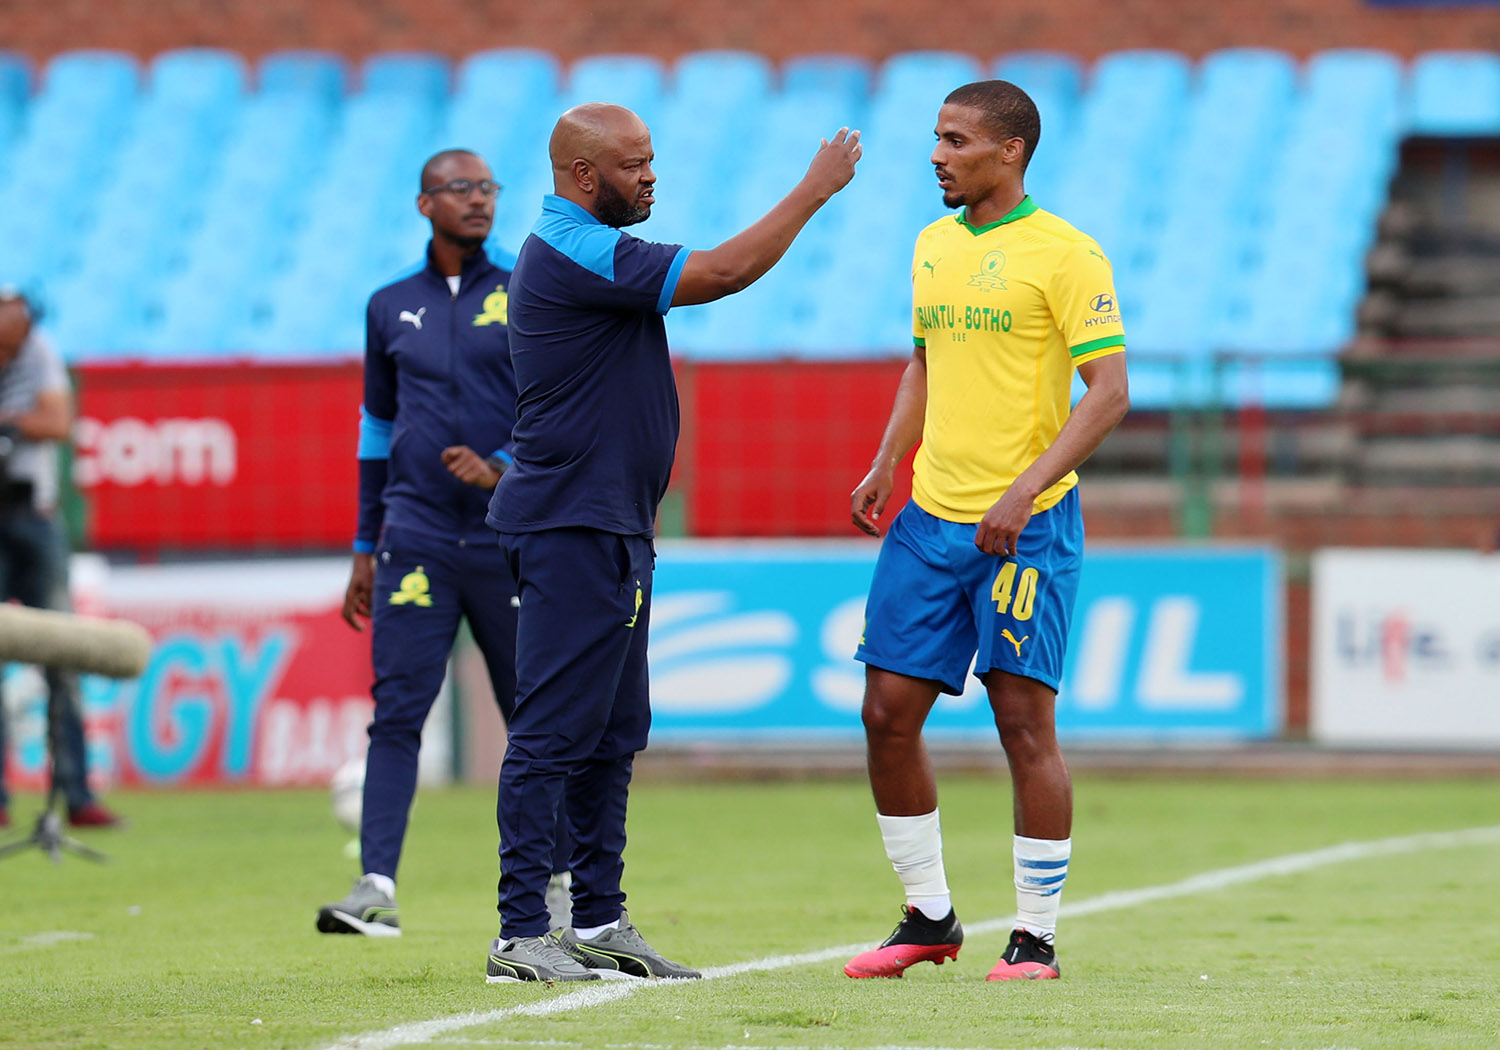 This is One of the Strongest Games We Have Played: Coach Manqoba